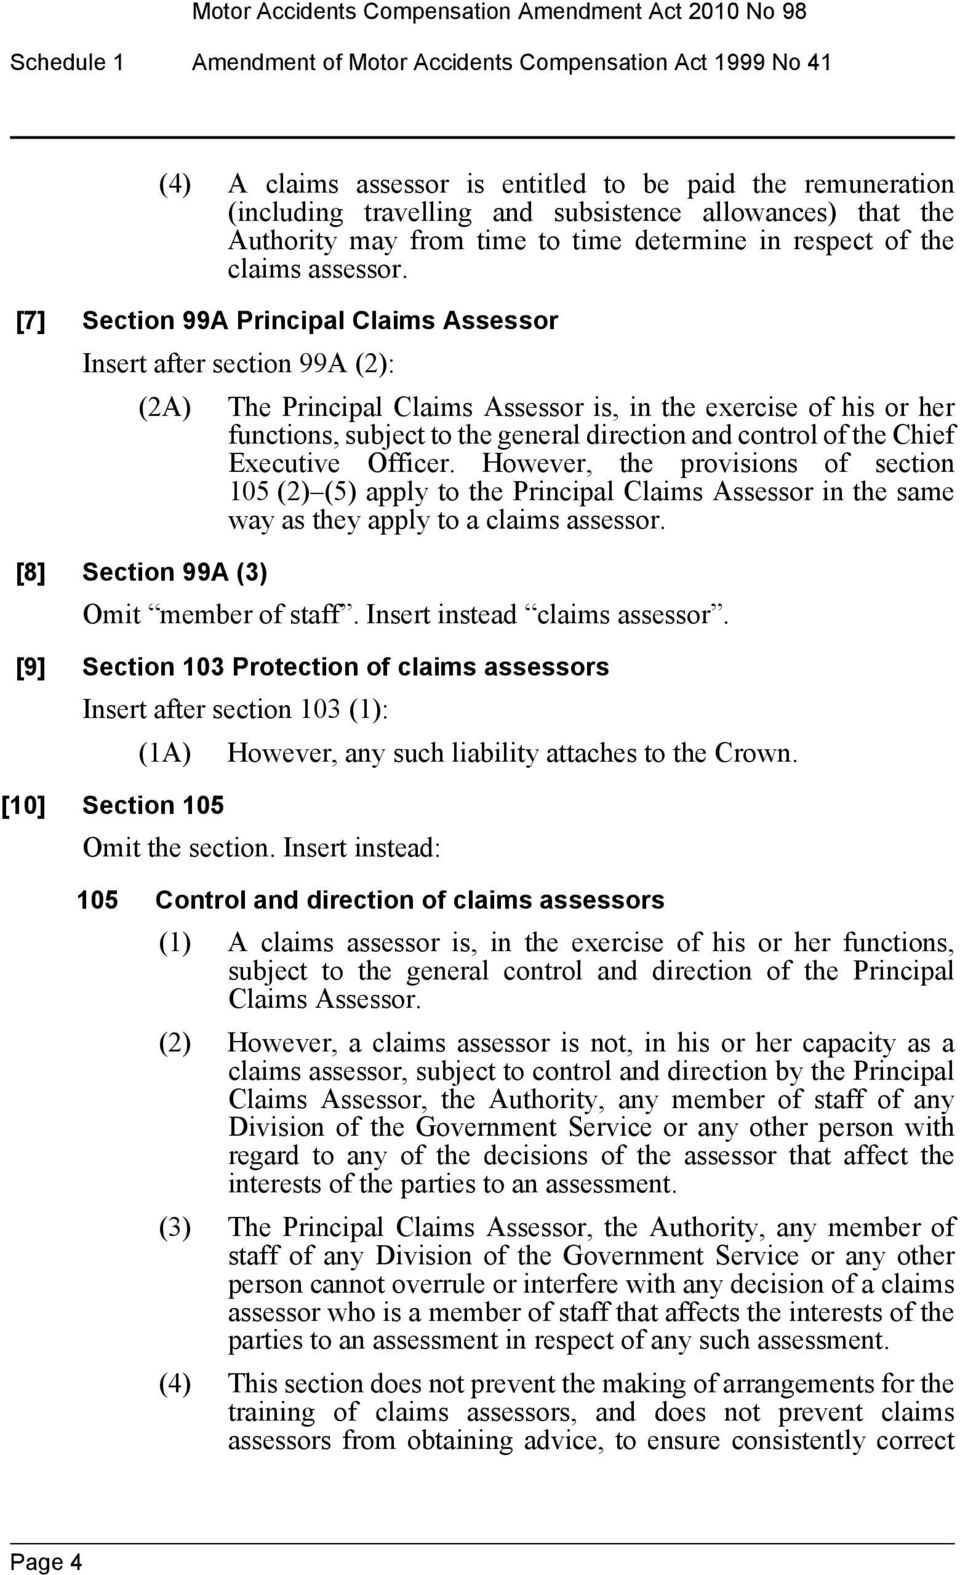 [7] Section 99A Principal Claims Assessor Insert after section 99A (2): (2A) The Principal Claims Assessor is, in the exercise of his or her functions, subject to the general direction and control of